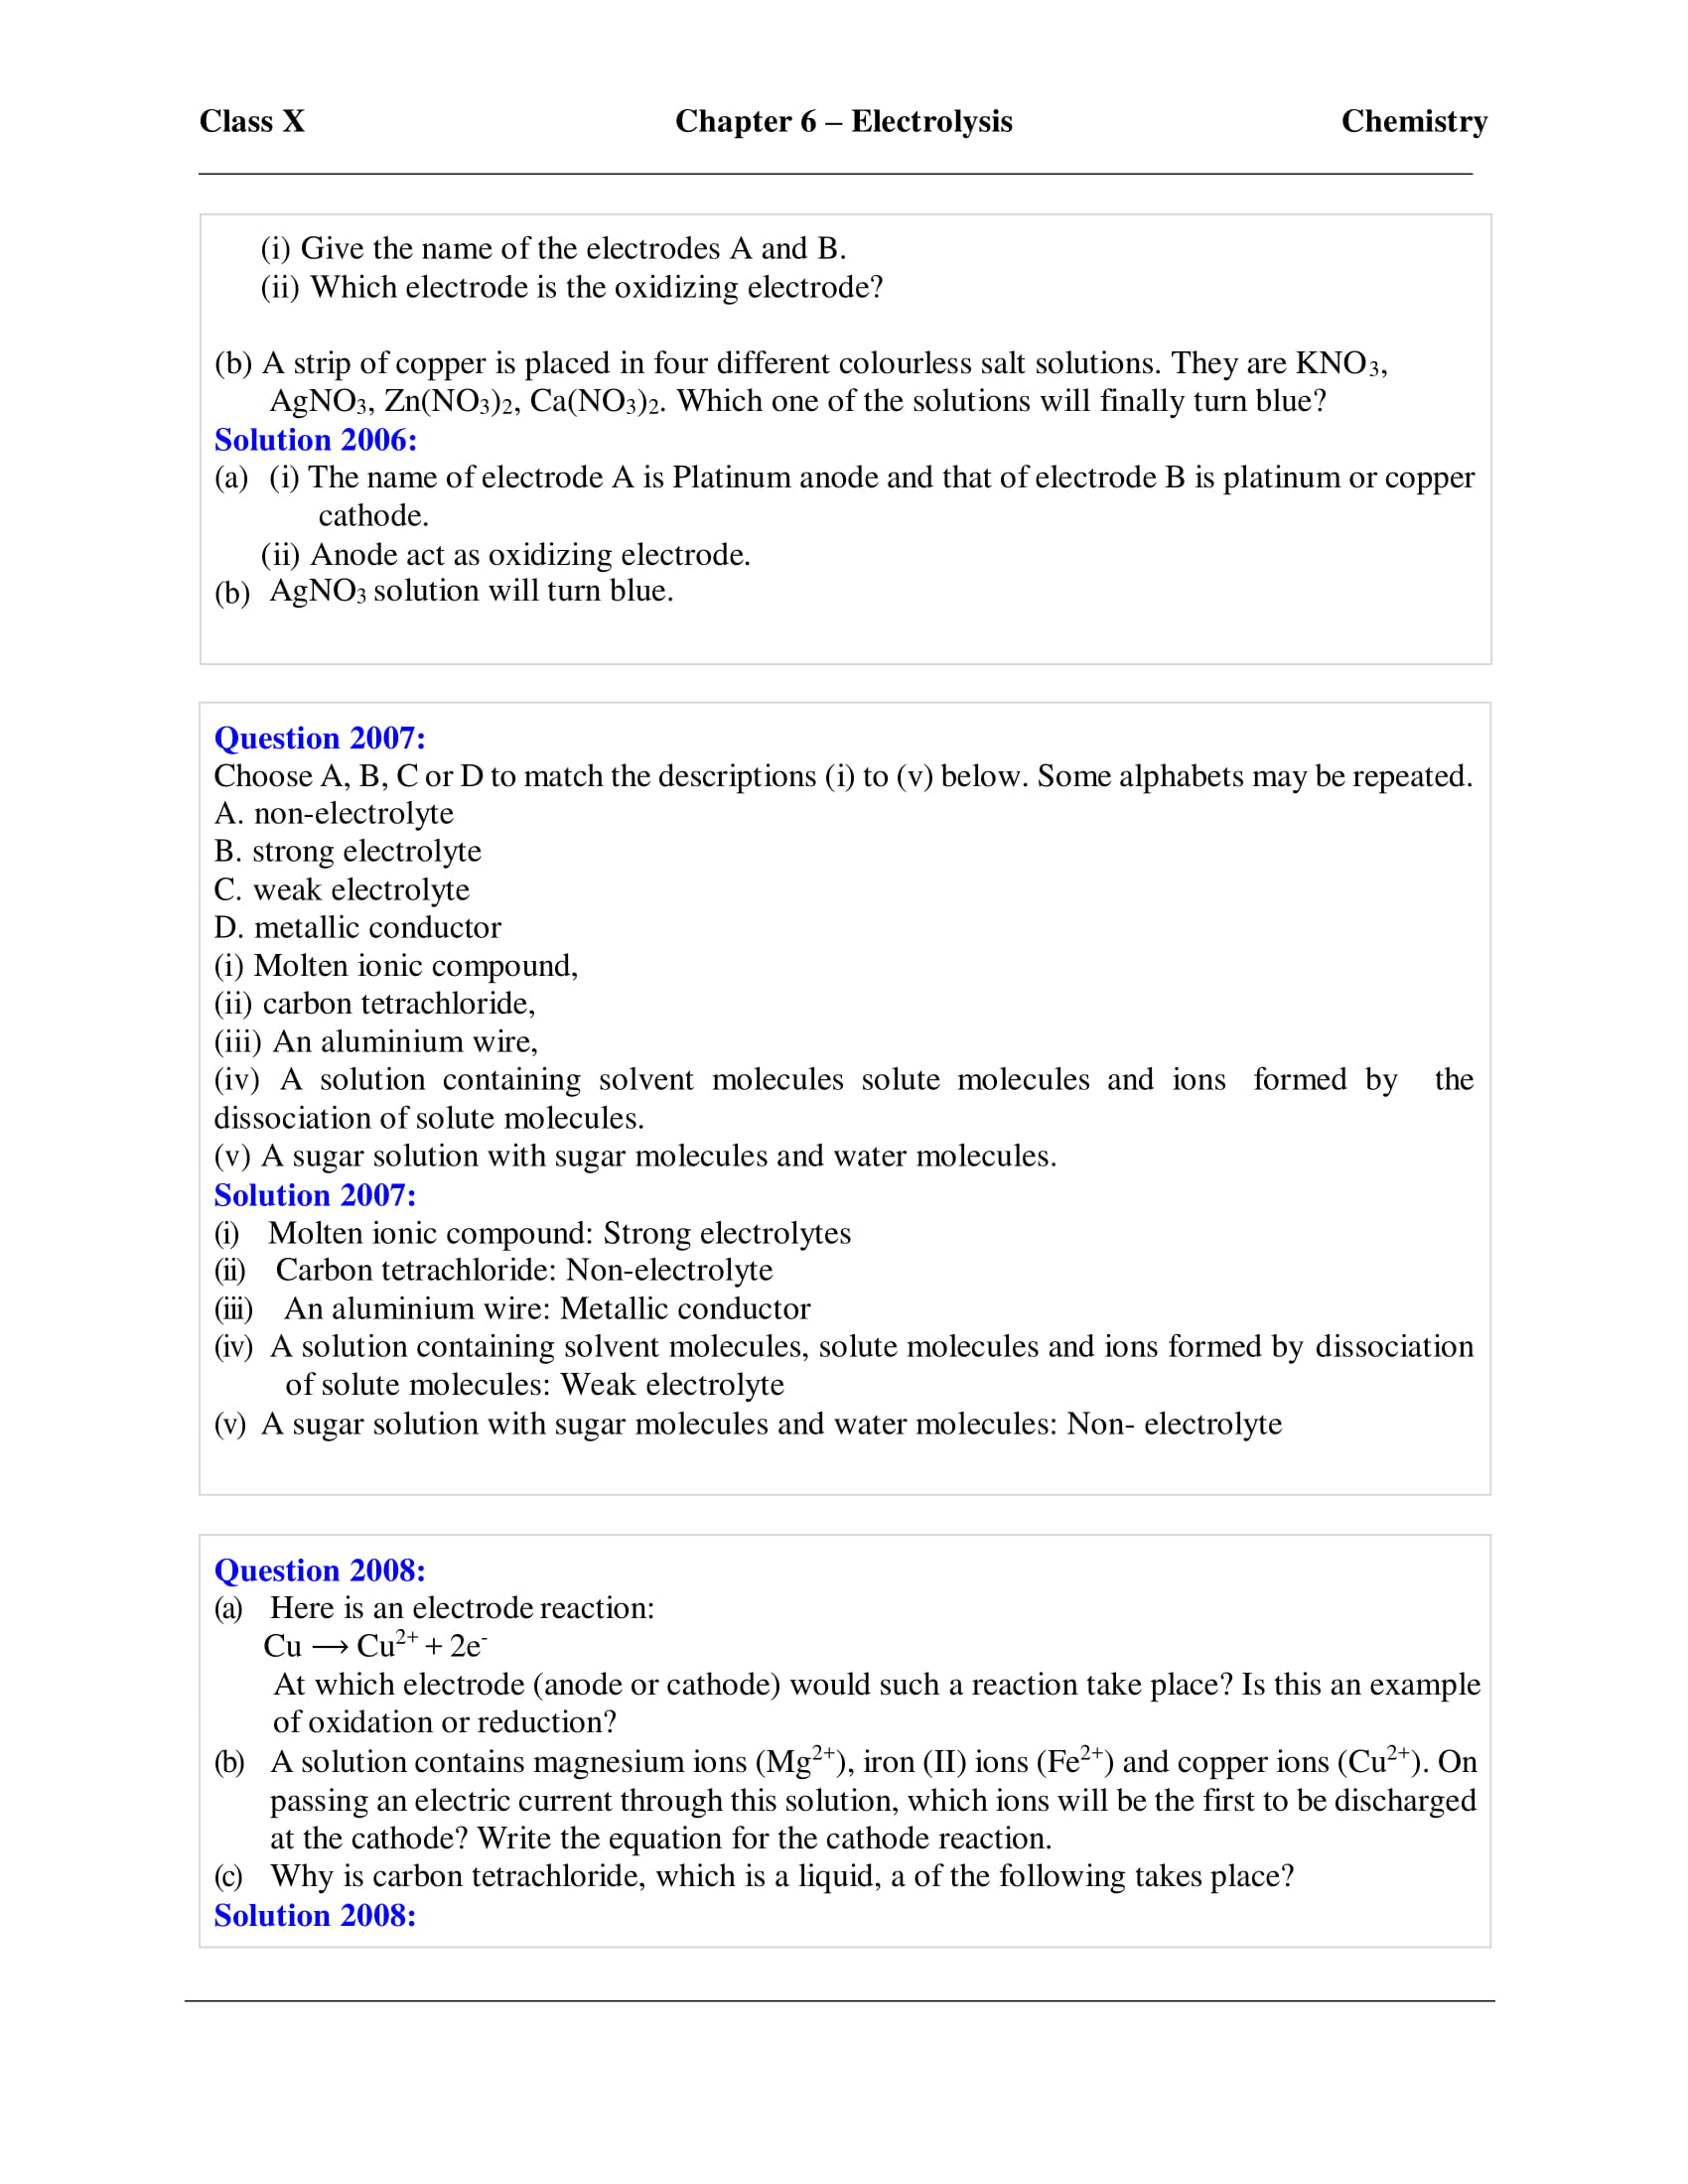 icse-selina-chemistry-solutions-class-10-chapter-6-electrolysis-12